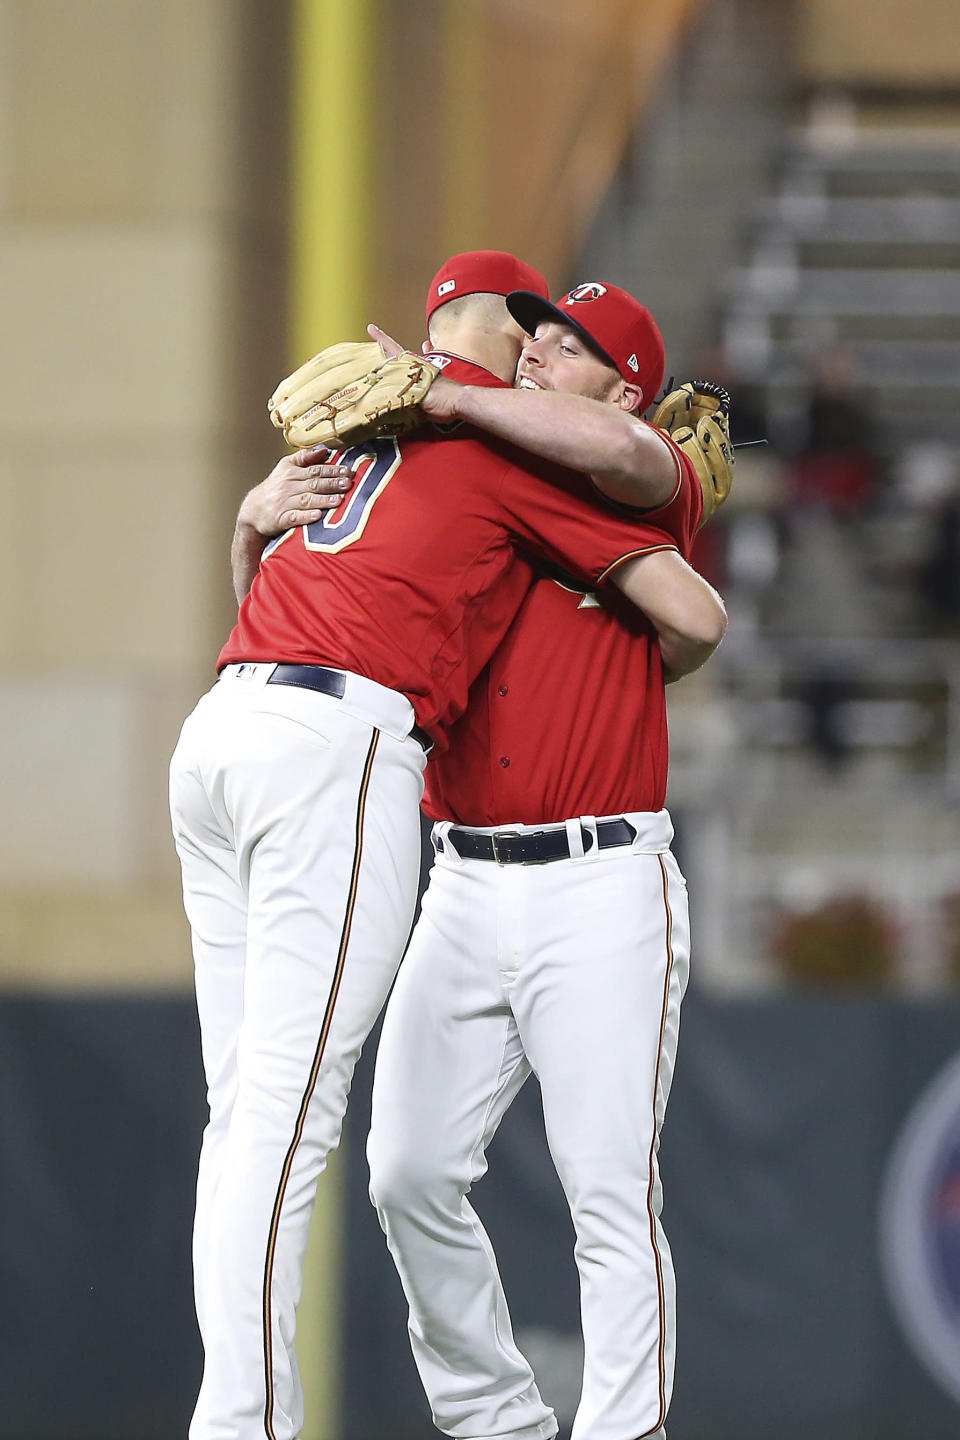 Minnesota Twins pitcher Aaron Slegers, left, and teammate Chris Gimenez, right, celebrate after their win overthe Chicago White Sox in the second game of a baseball doubleheader Friday, Sept. 28, 2018, in Minneapolis. (AP Photo/Stacy Bengs)